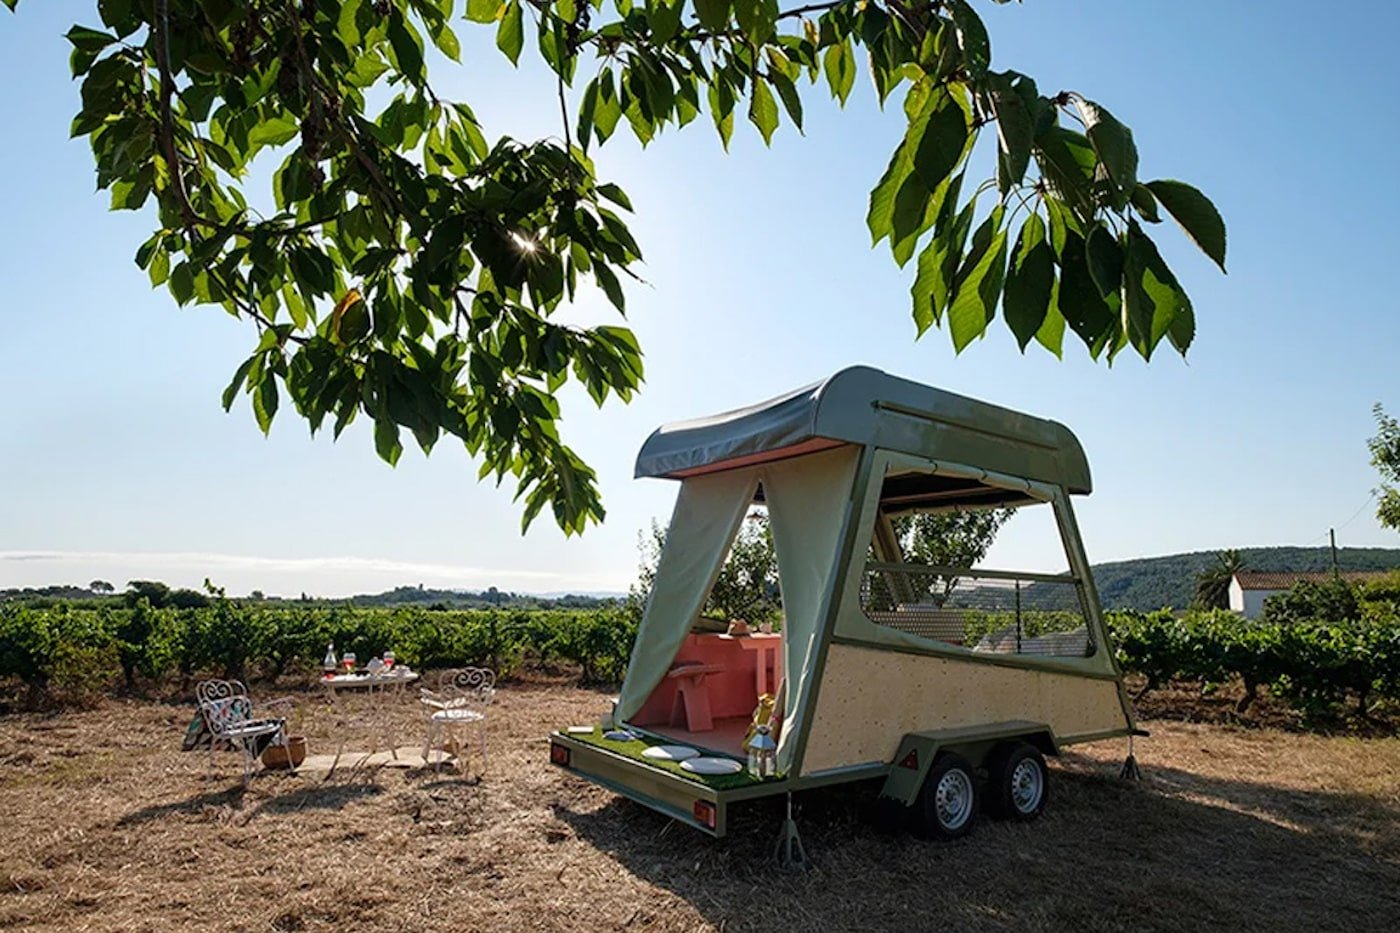 Campervan with a green roof and solar power